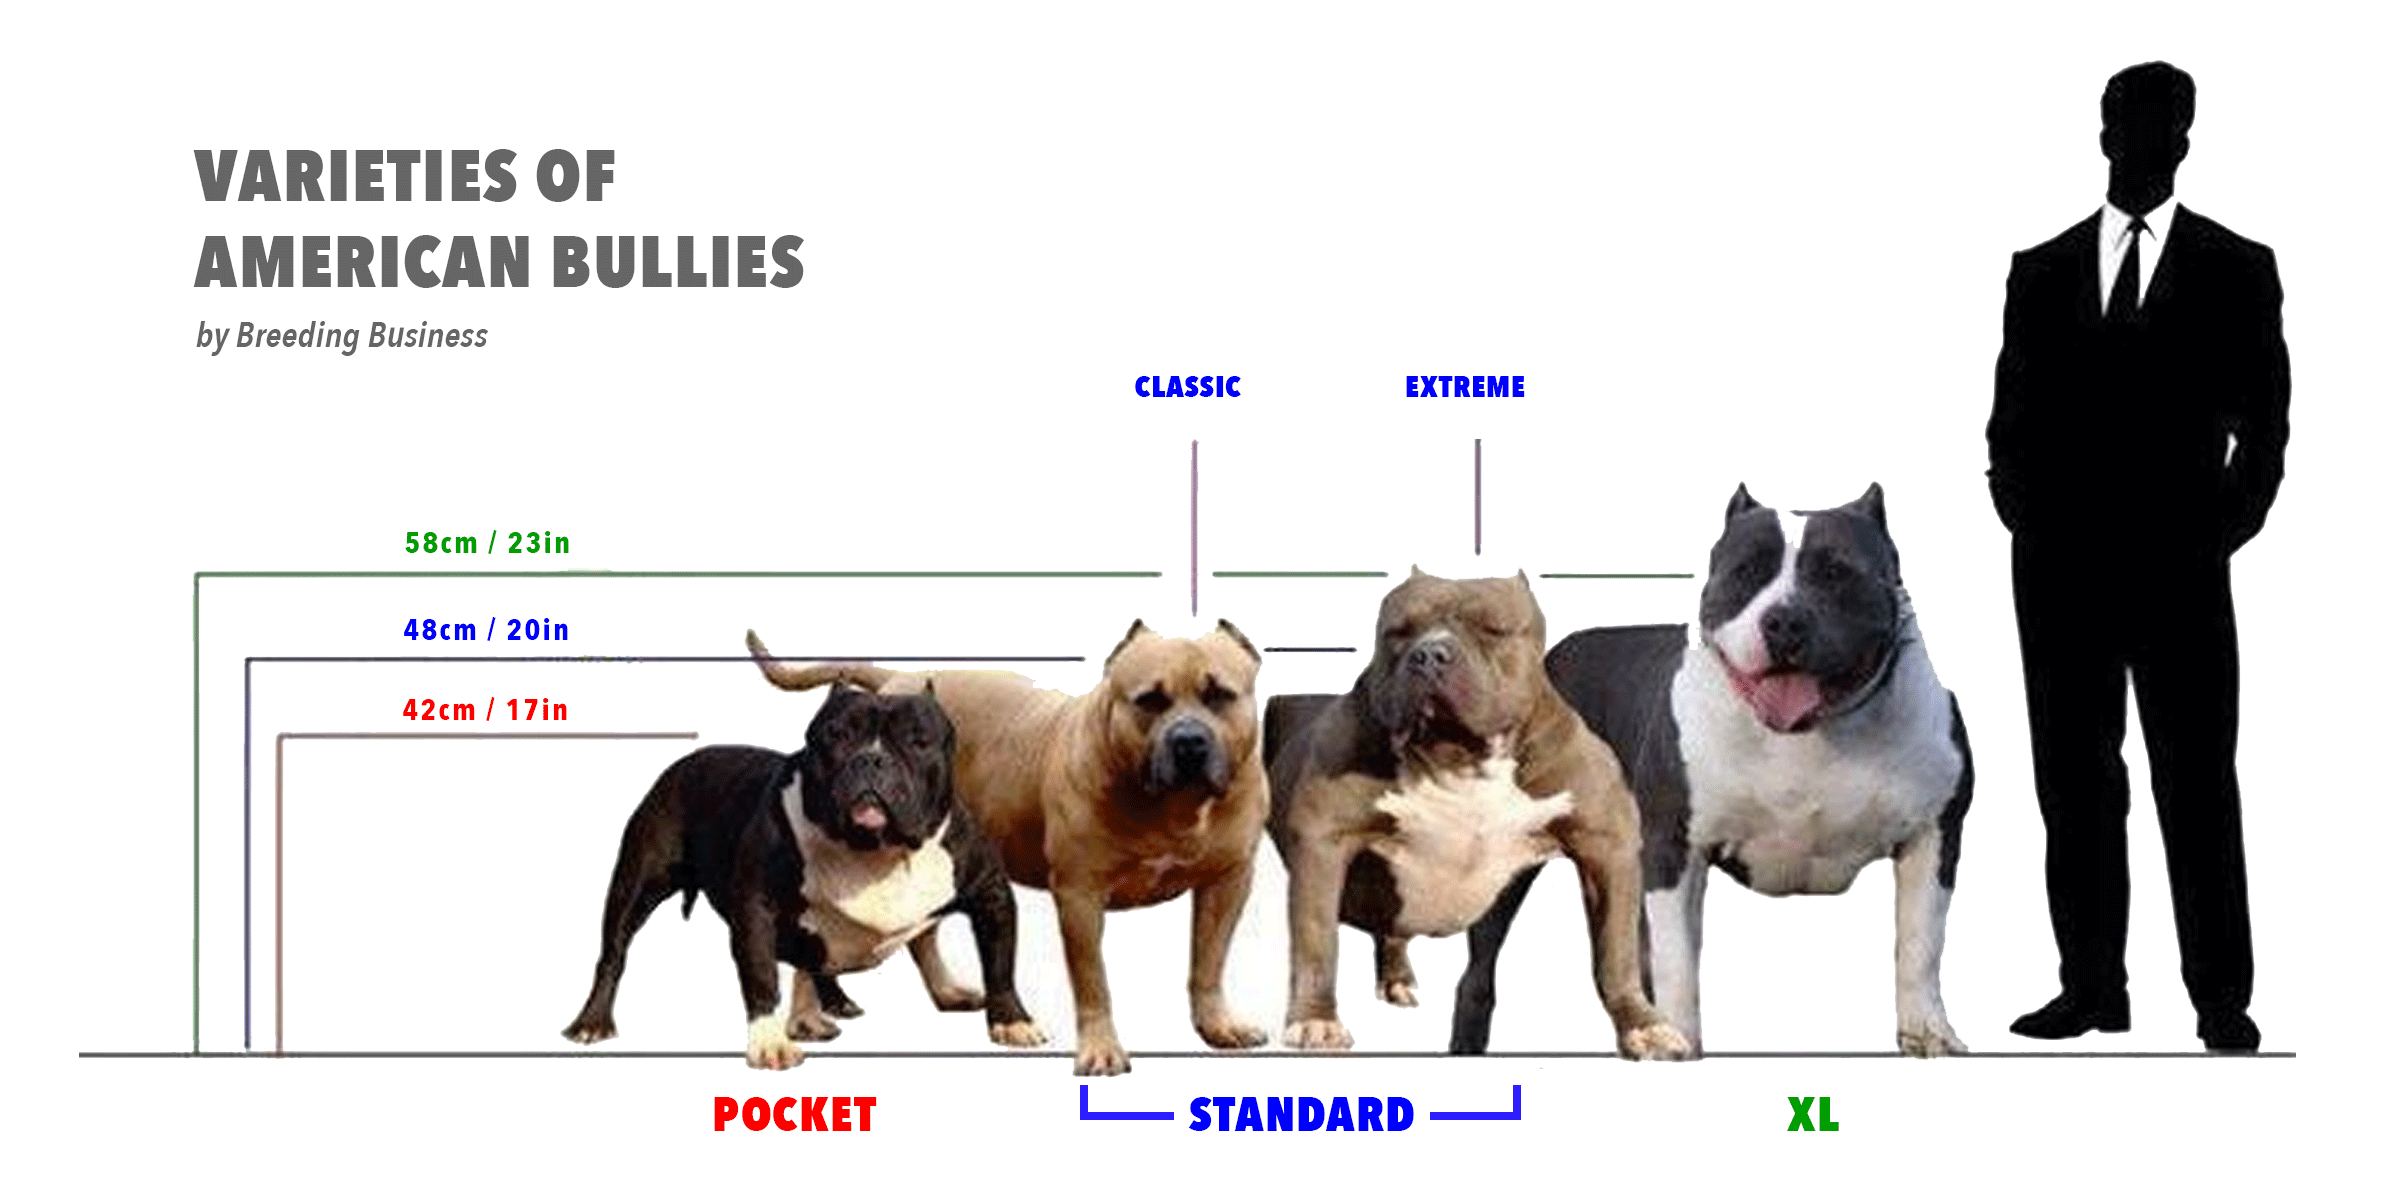 The Different Types of American bullies